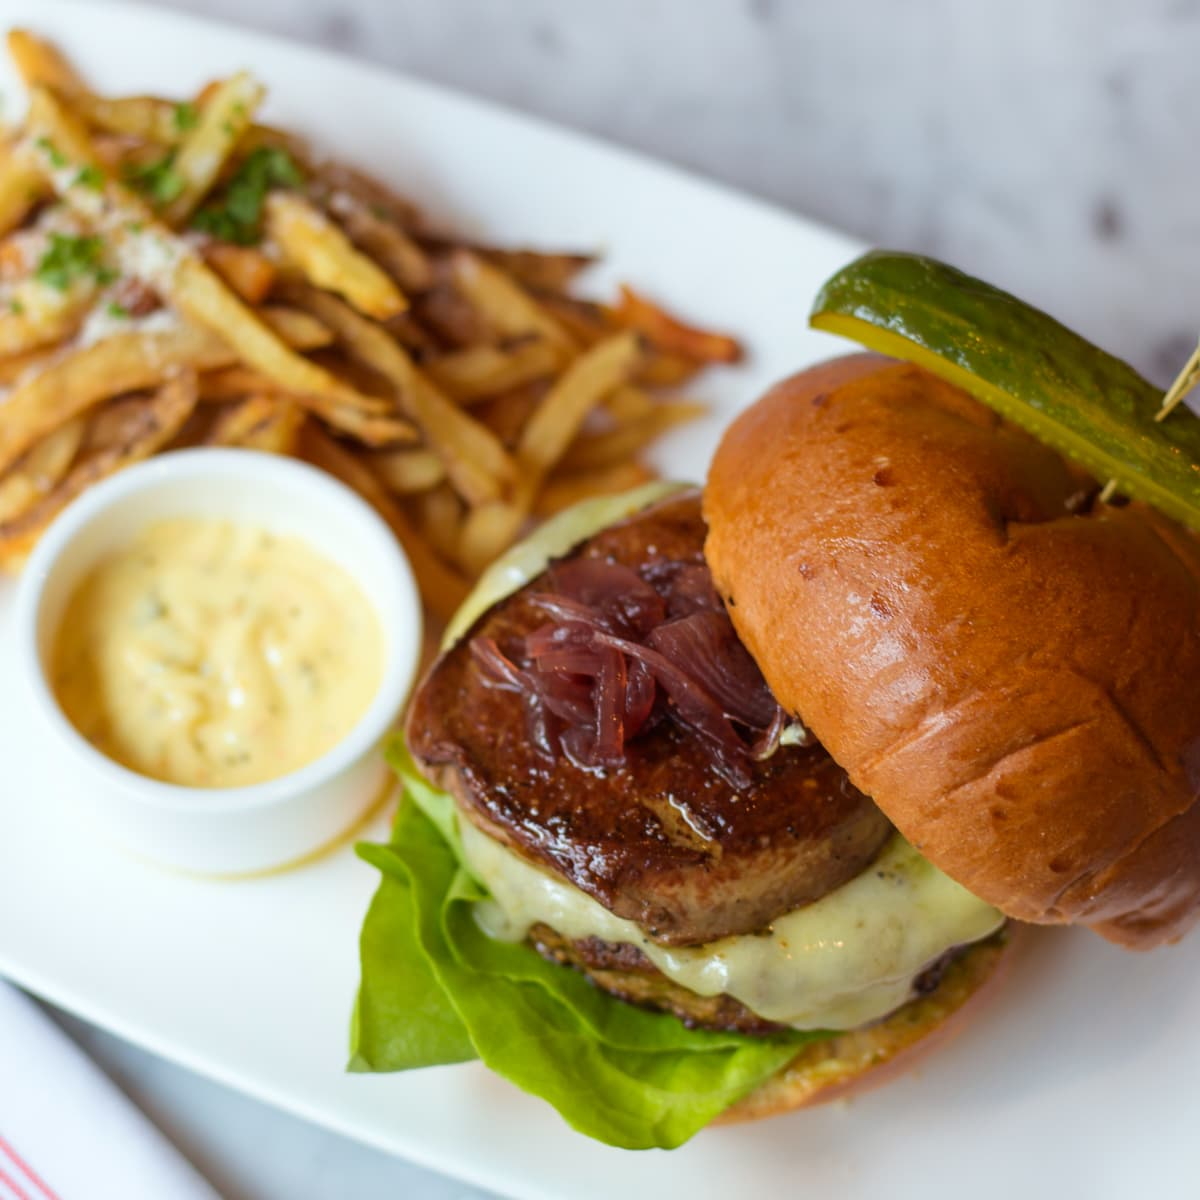 Houston, over the top burgers, June 2017, Foie Gras at Toulouse